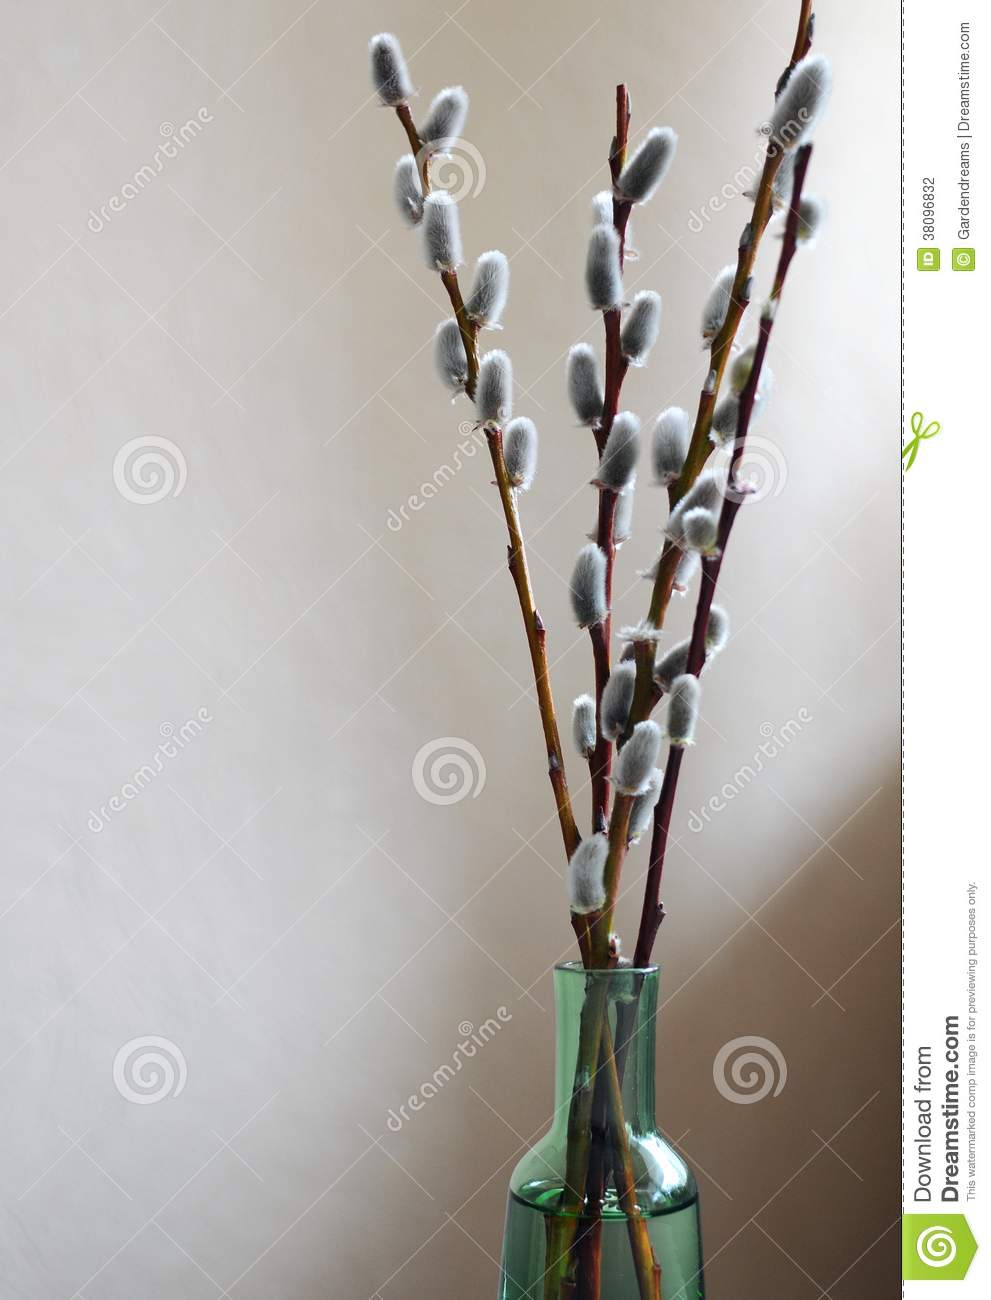 Bunch of catkin twigs in a green glass vase stock photo image of royalty free stock photo reviewsmspy